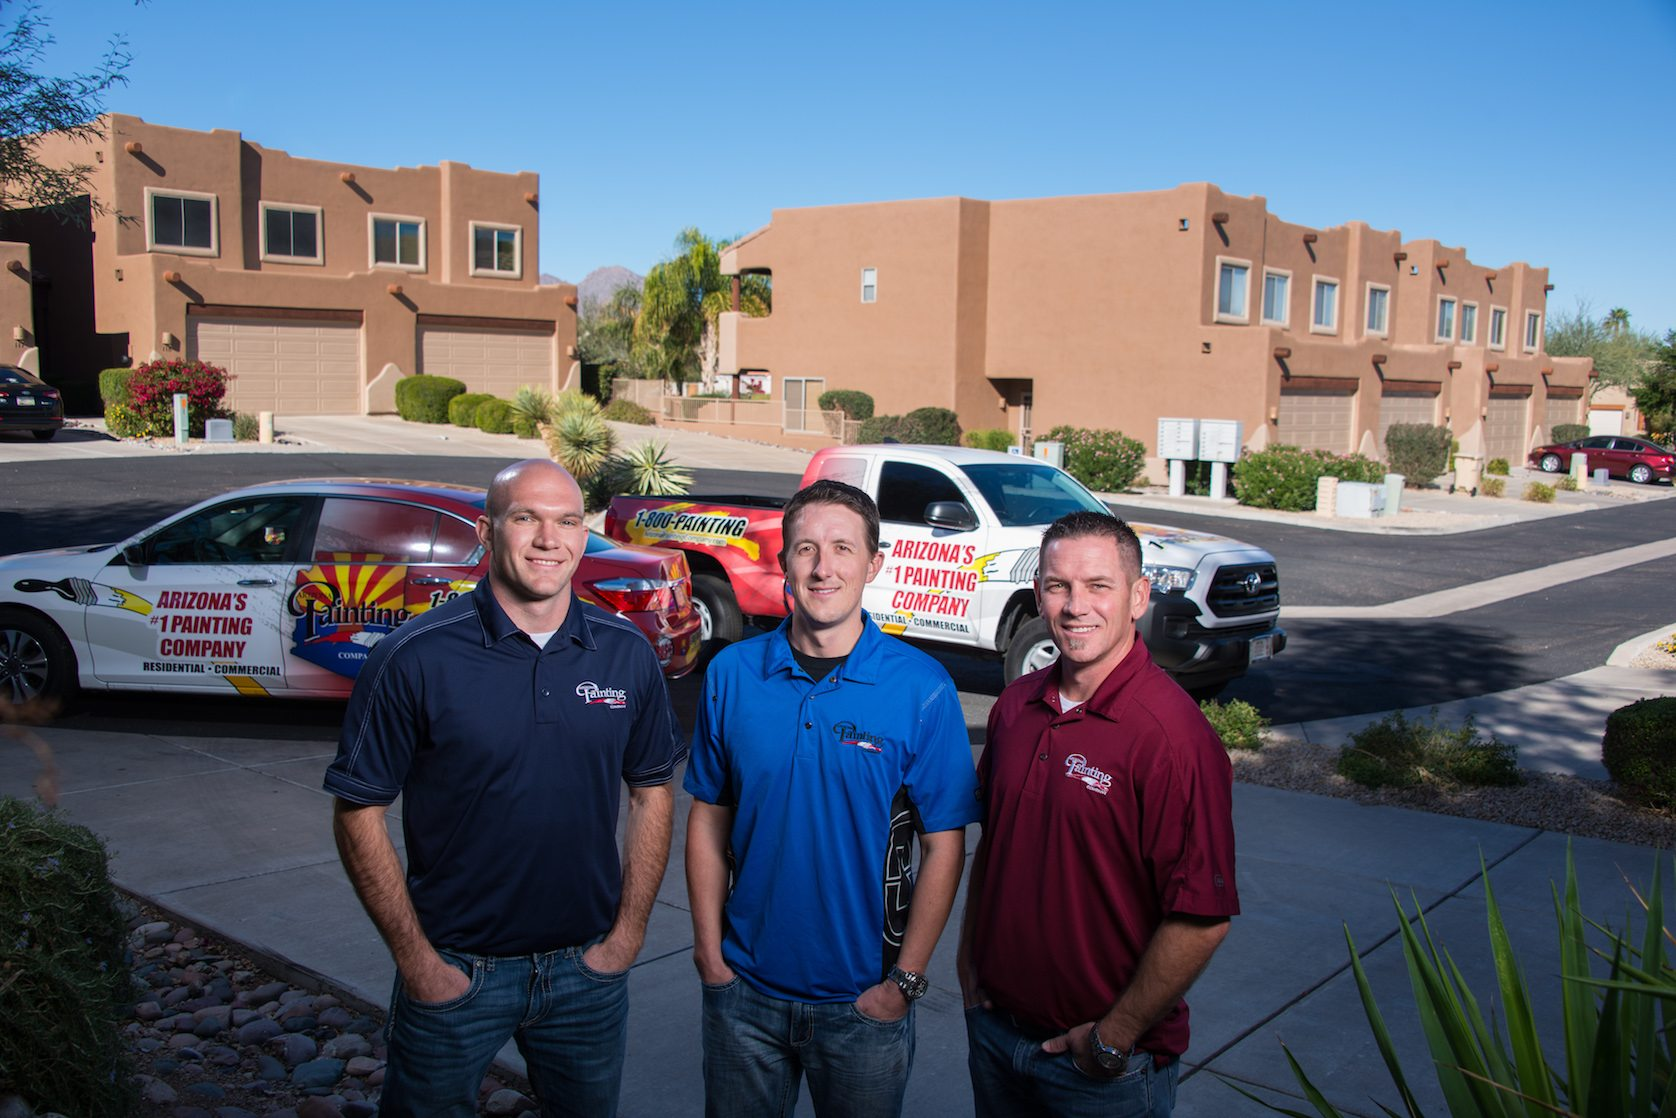 Owners of Arizona Painting Company